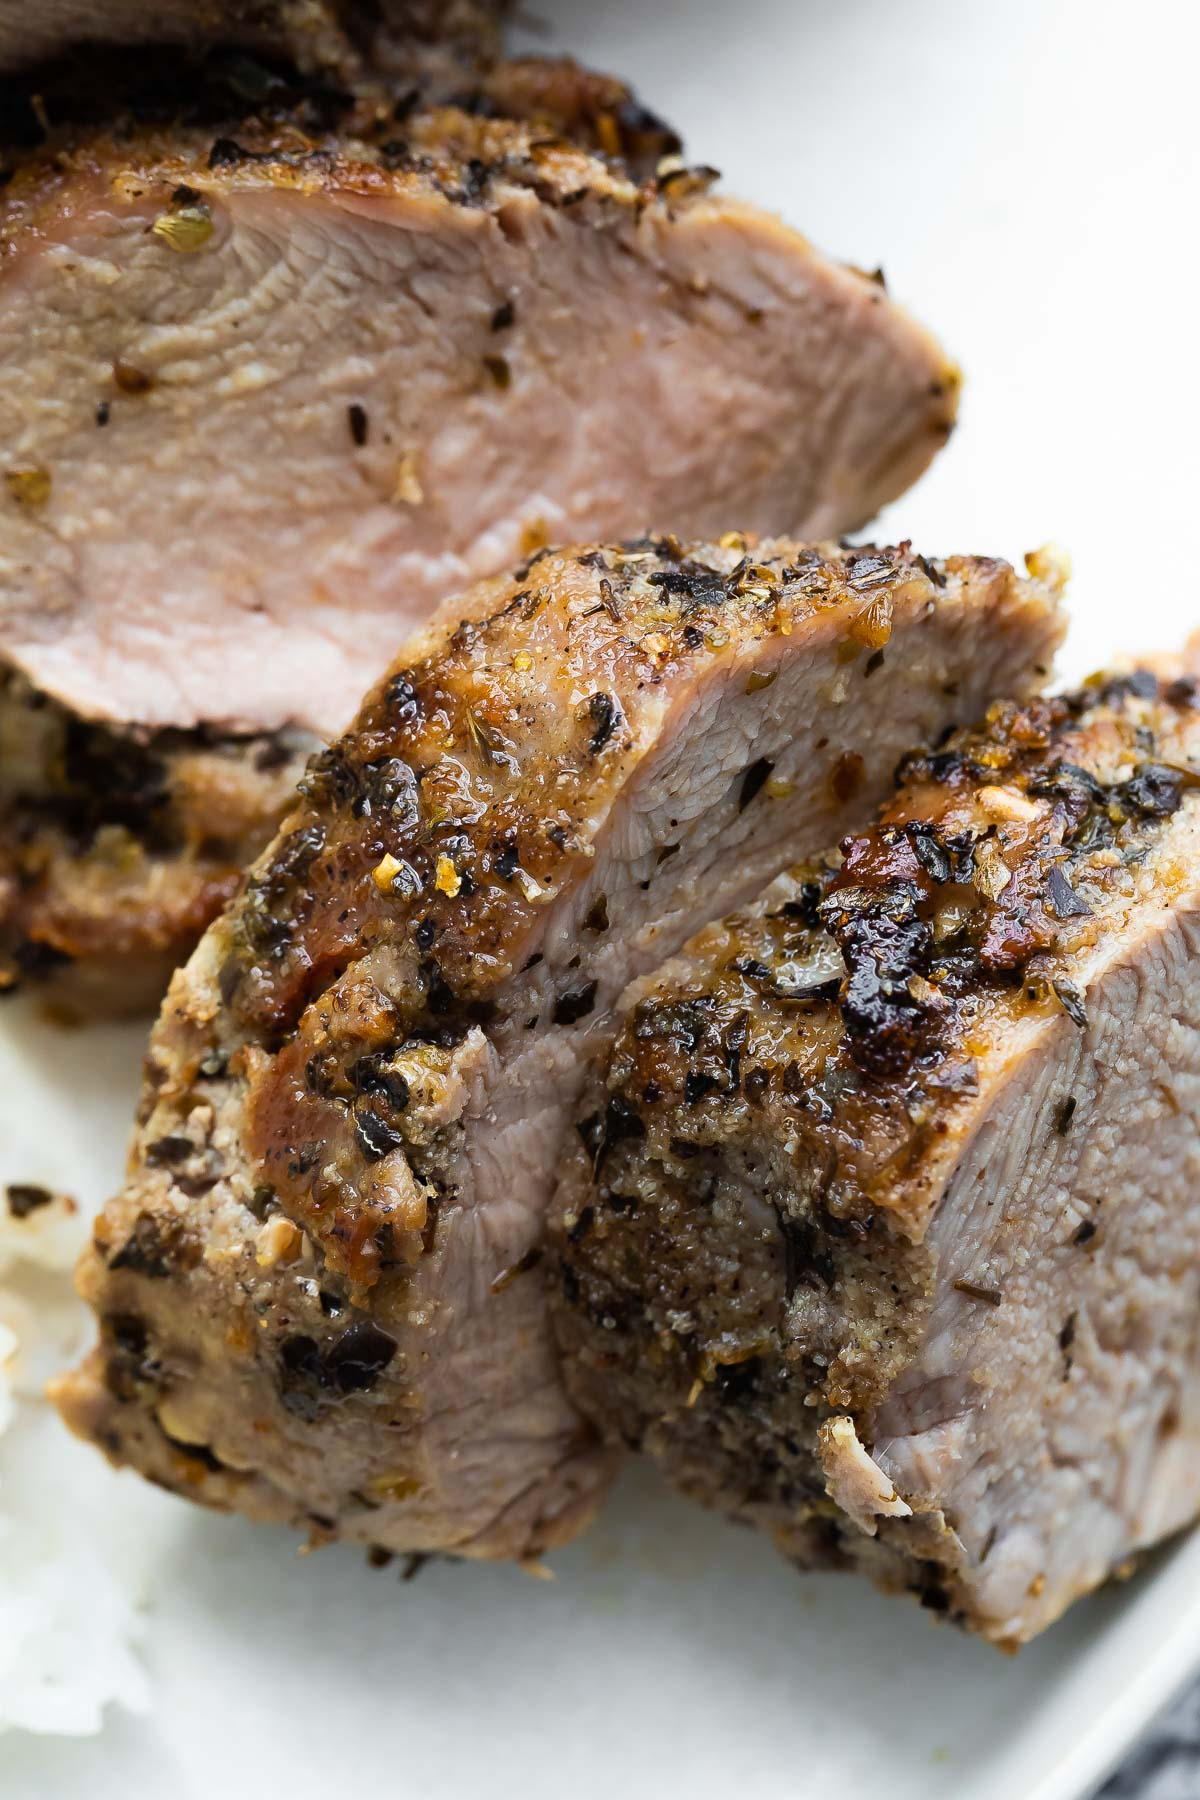 close up shot of sliced pork tenderloin showing the herbs and brown crust on surface